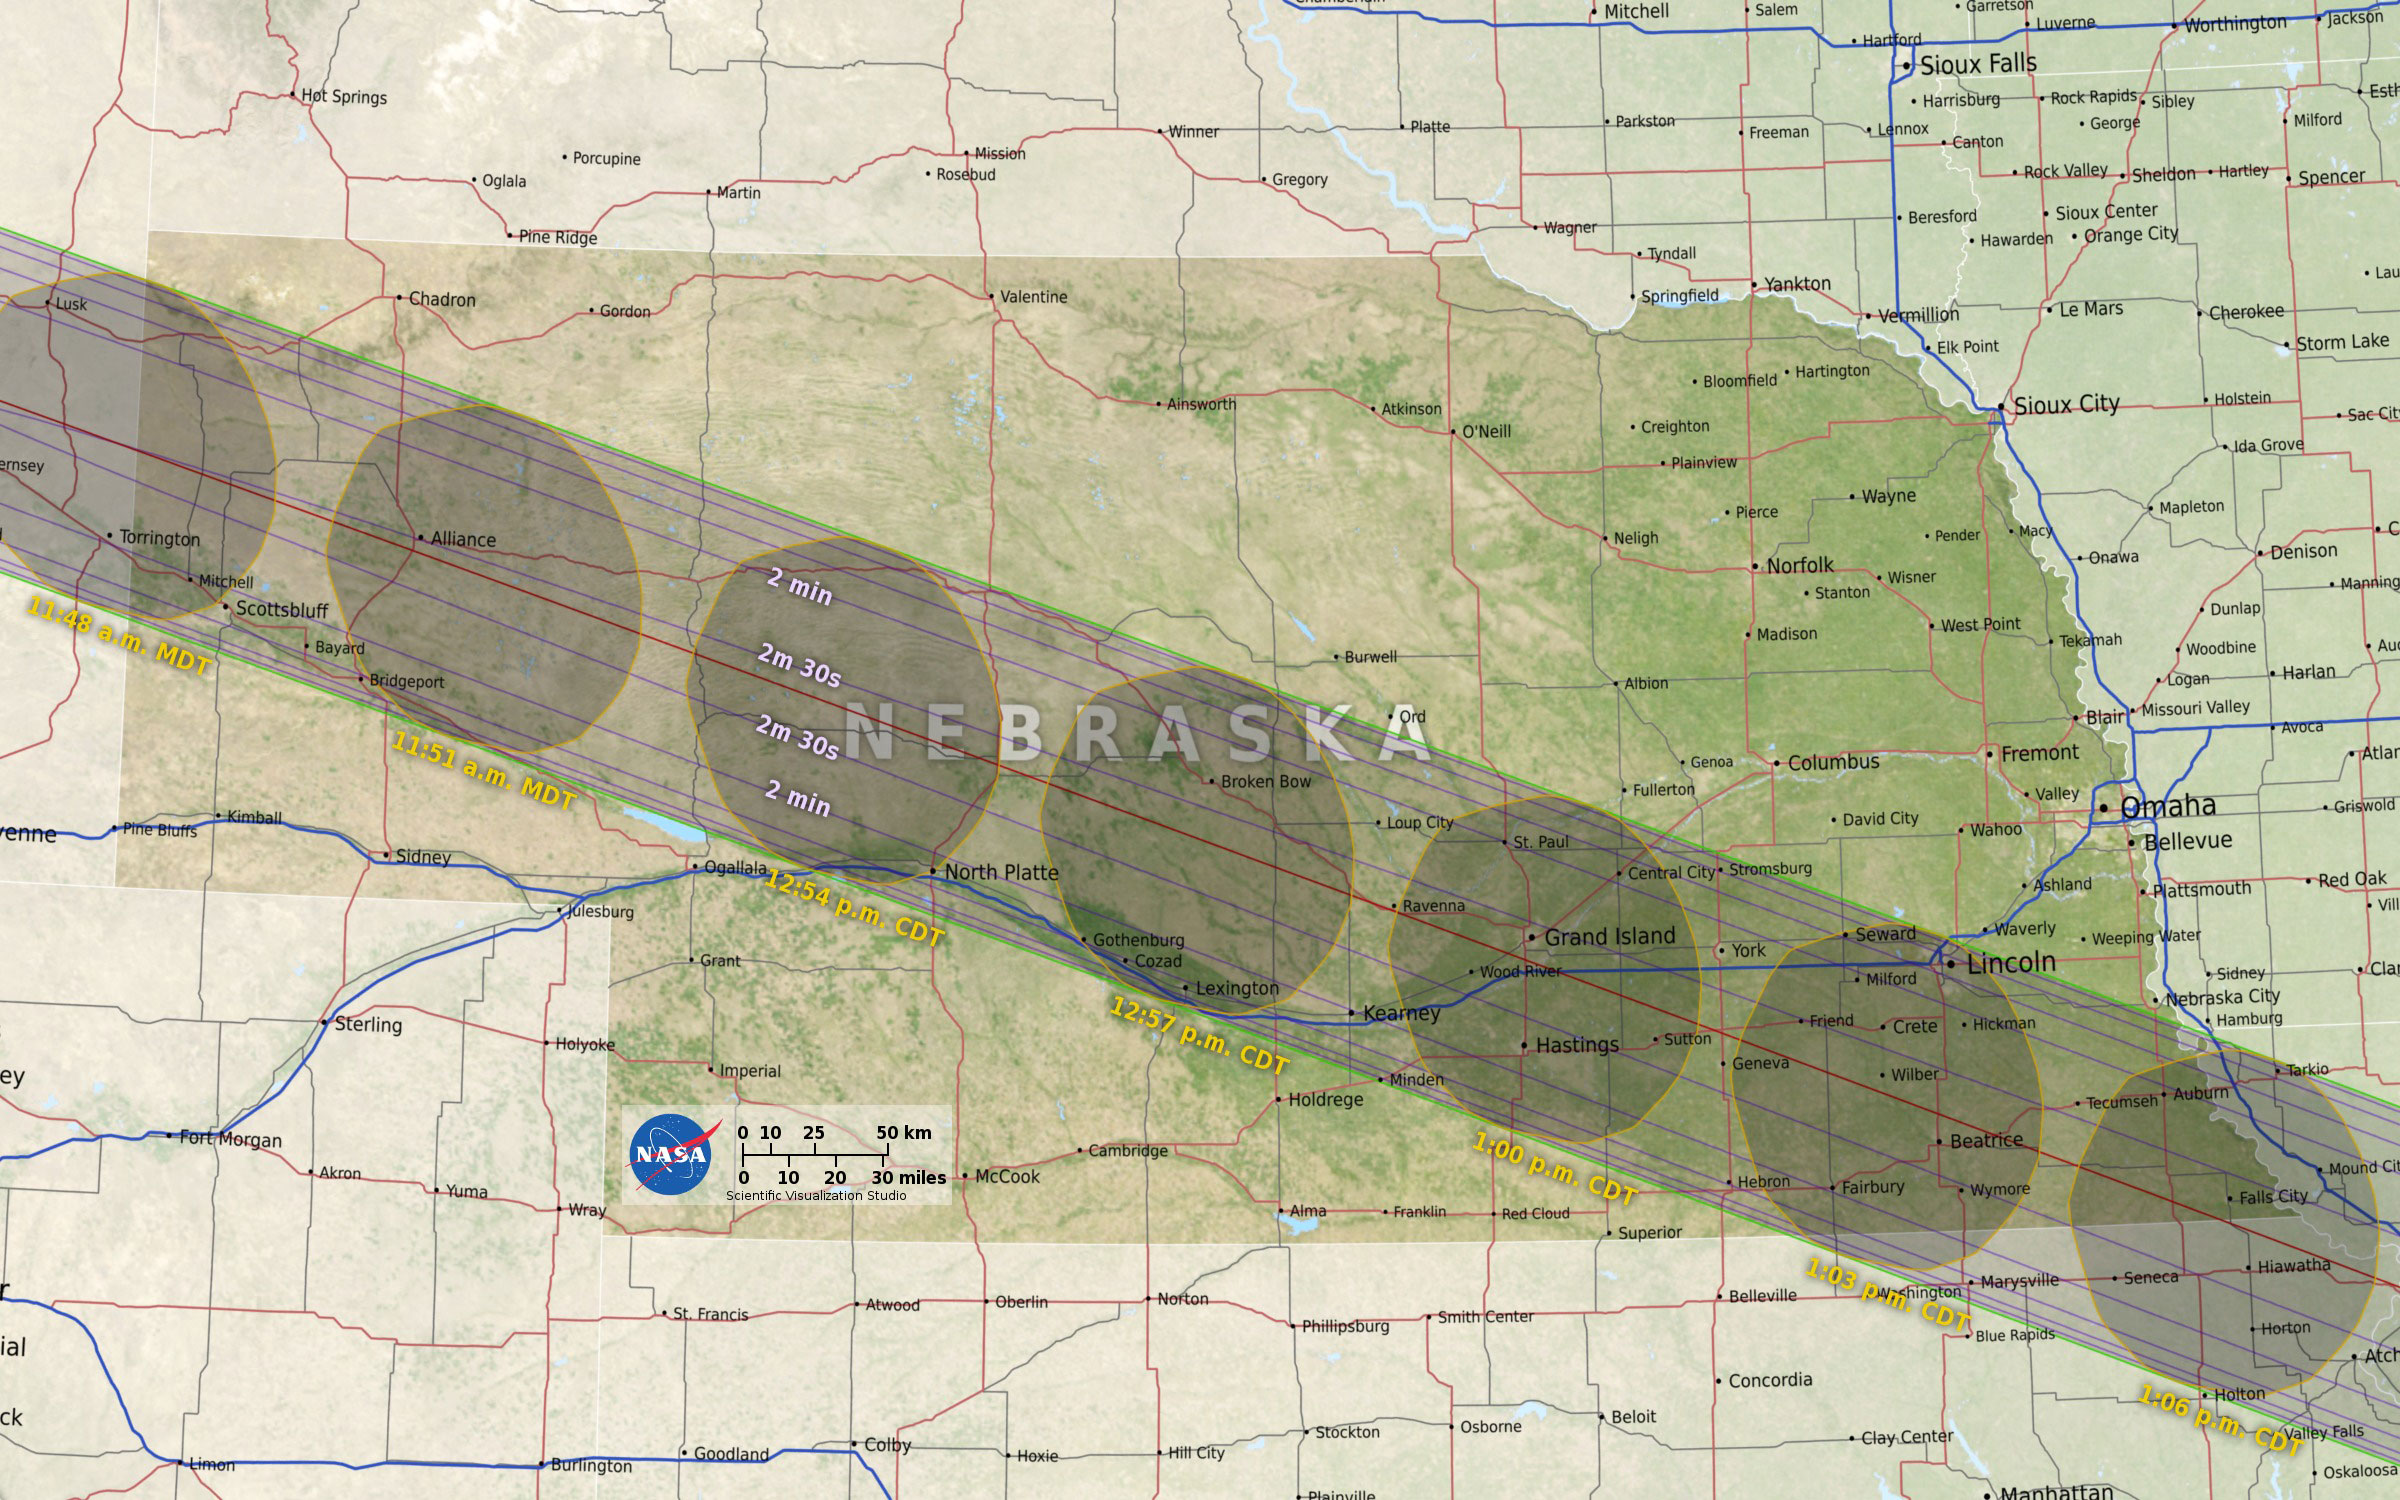 Here is where observers will see the total solar eclipse